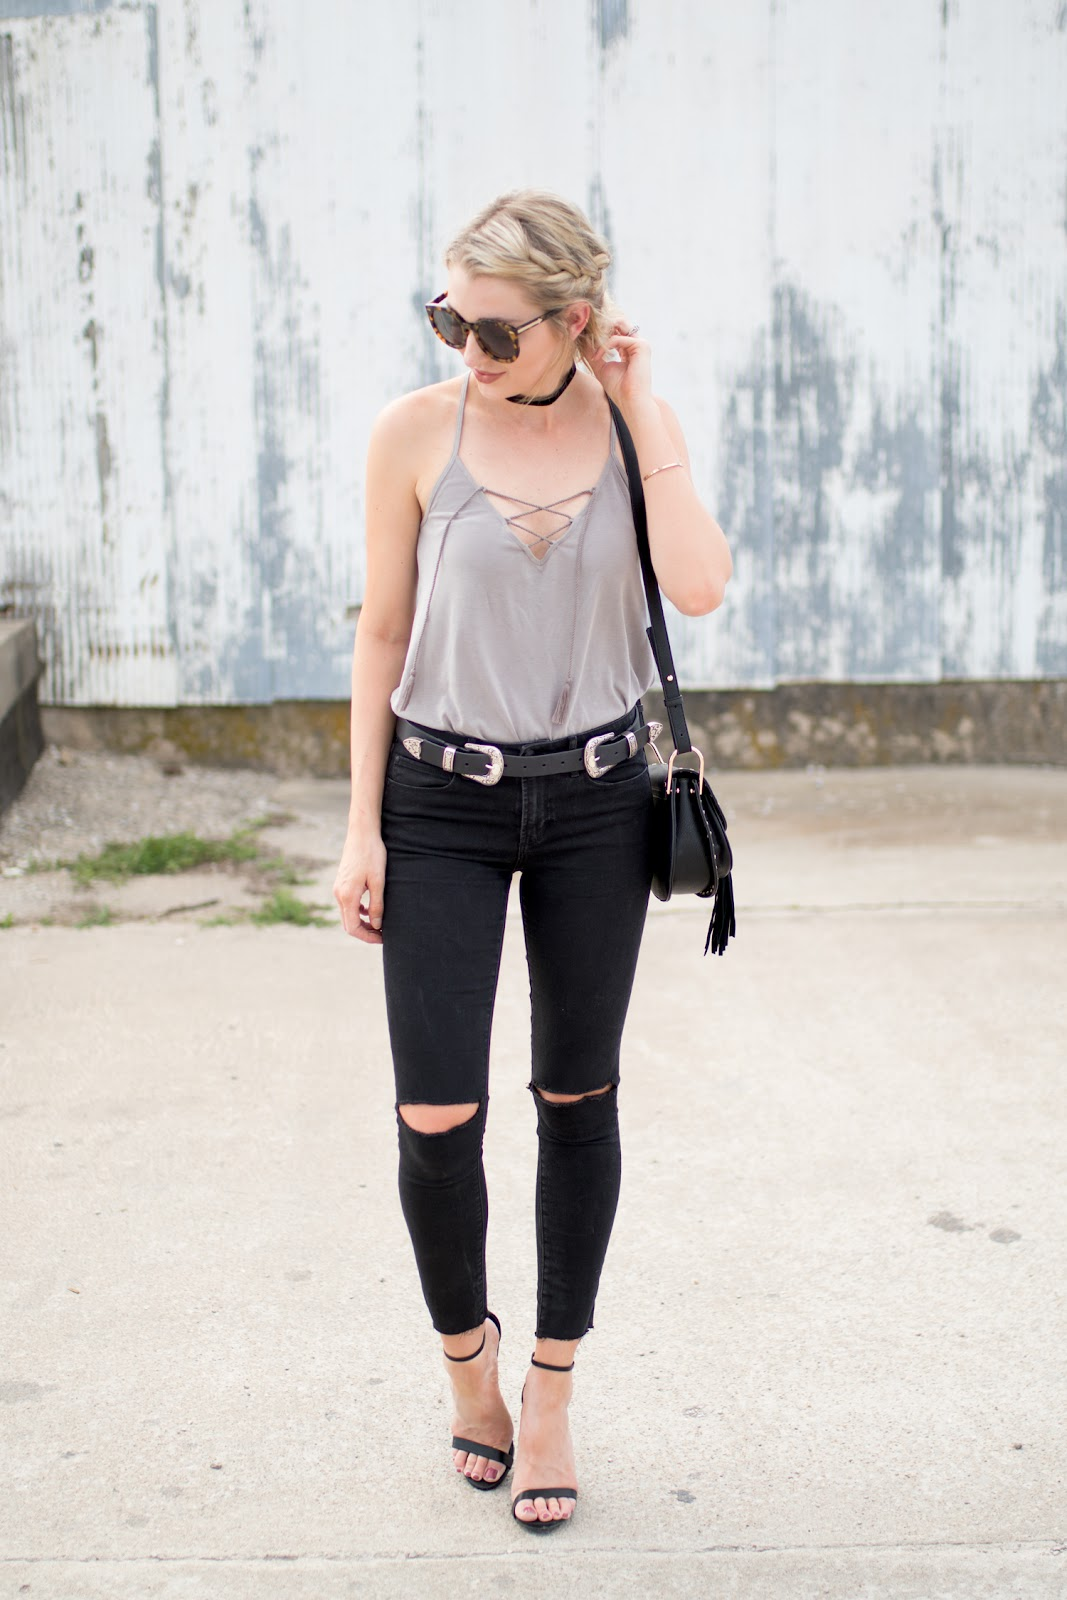 Tank top tucked into high-waisted jeans